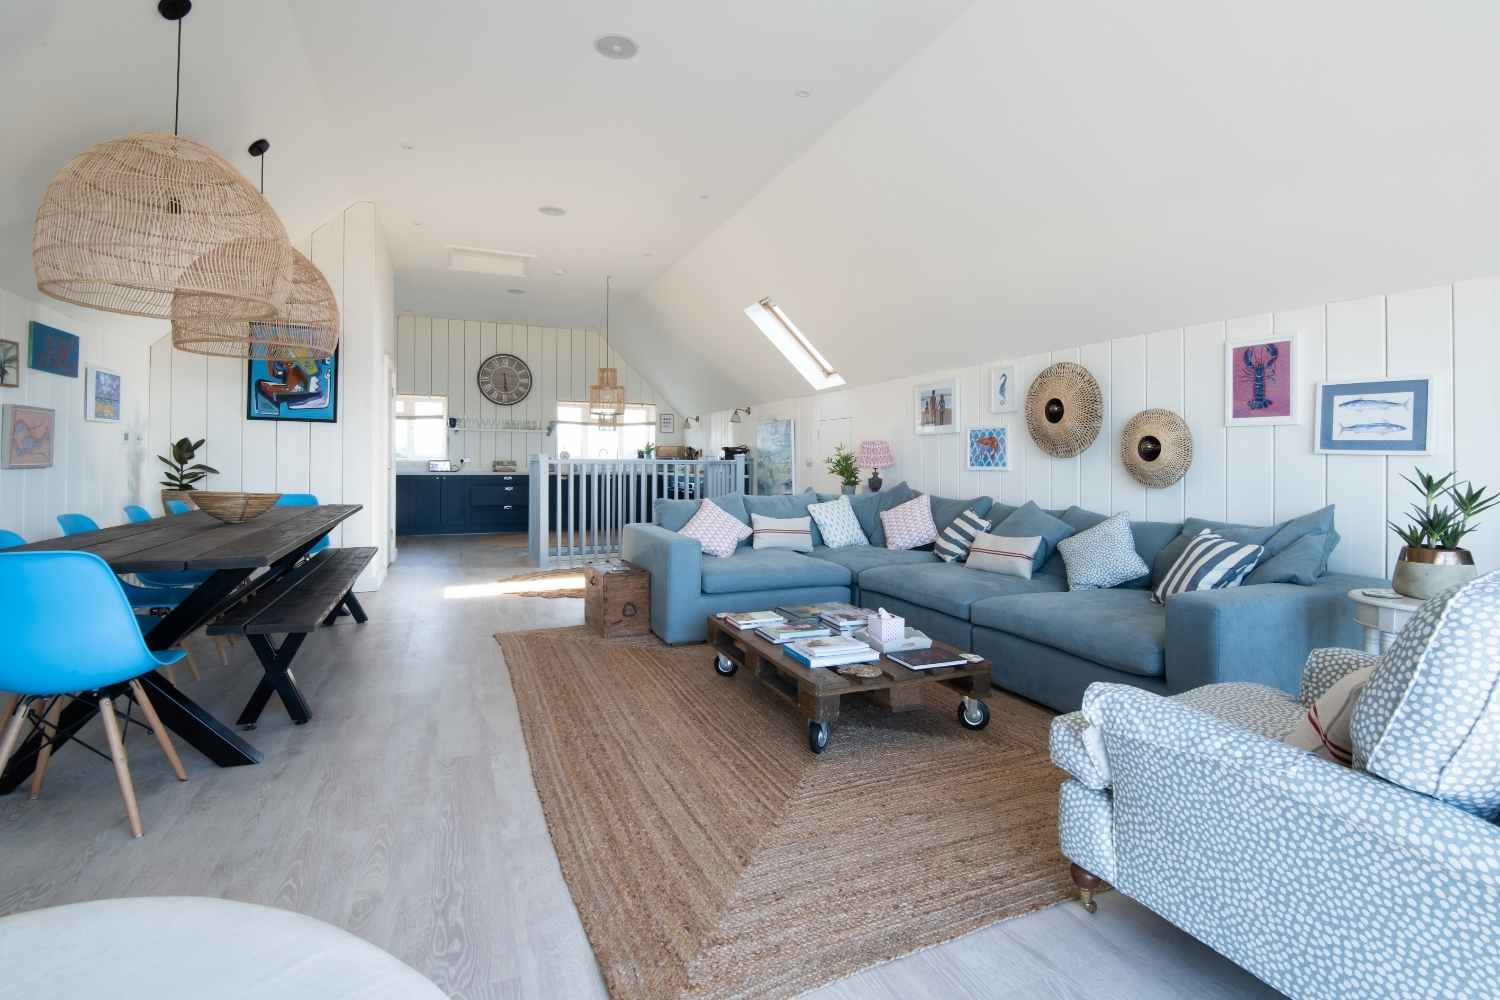 A large sociable living space